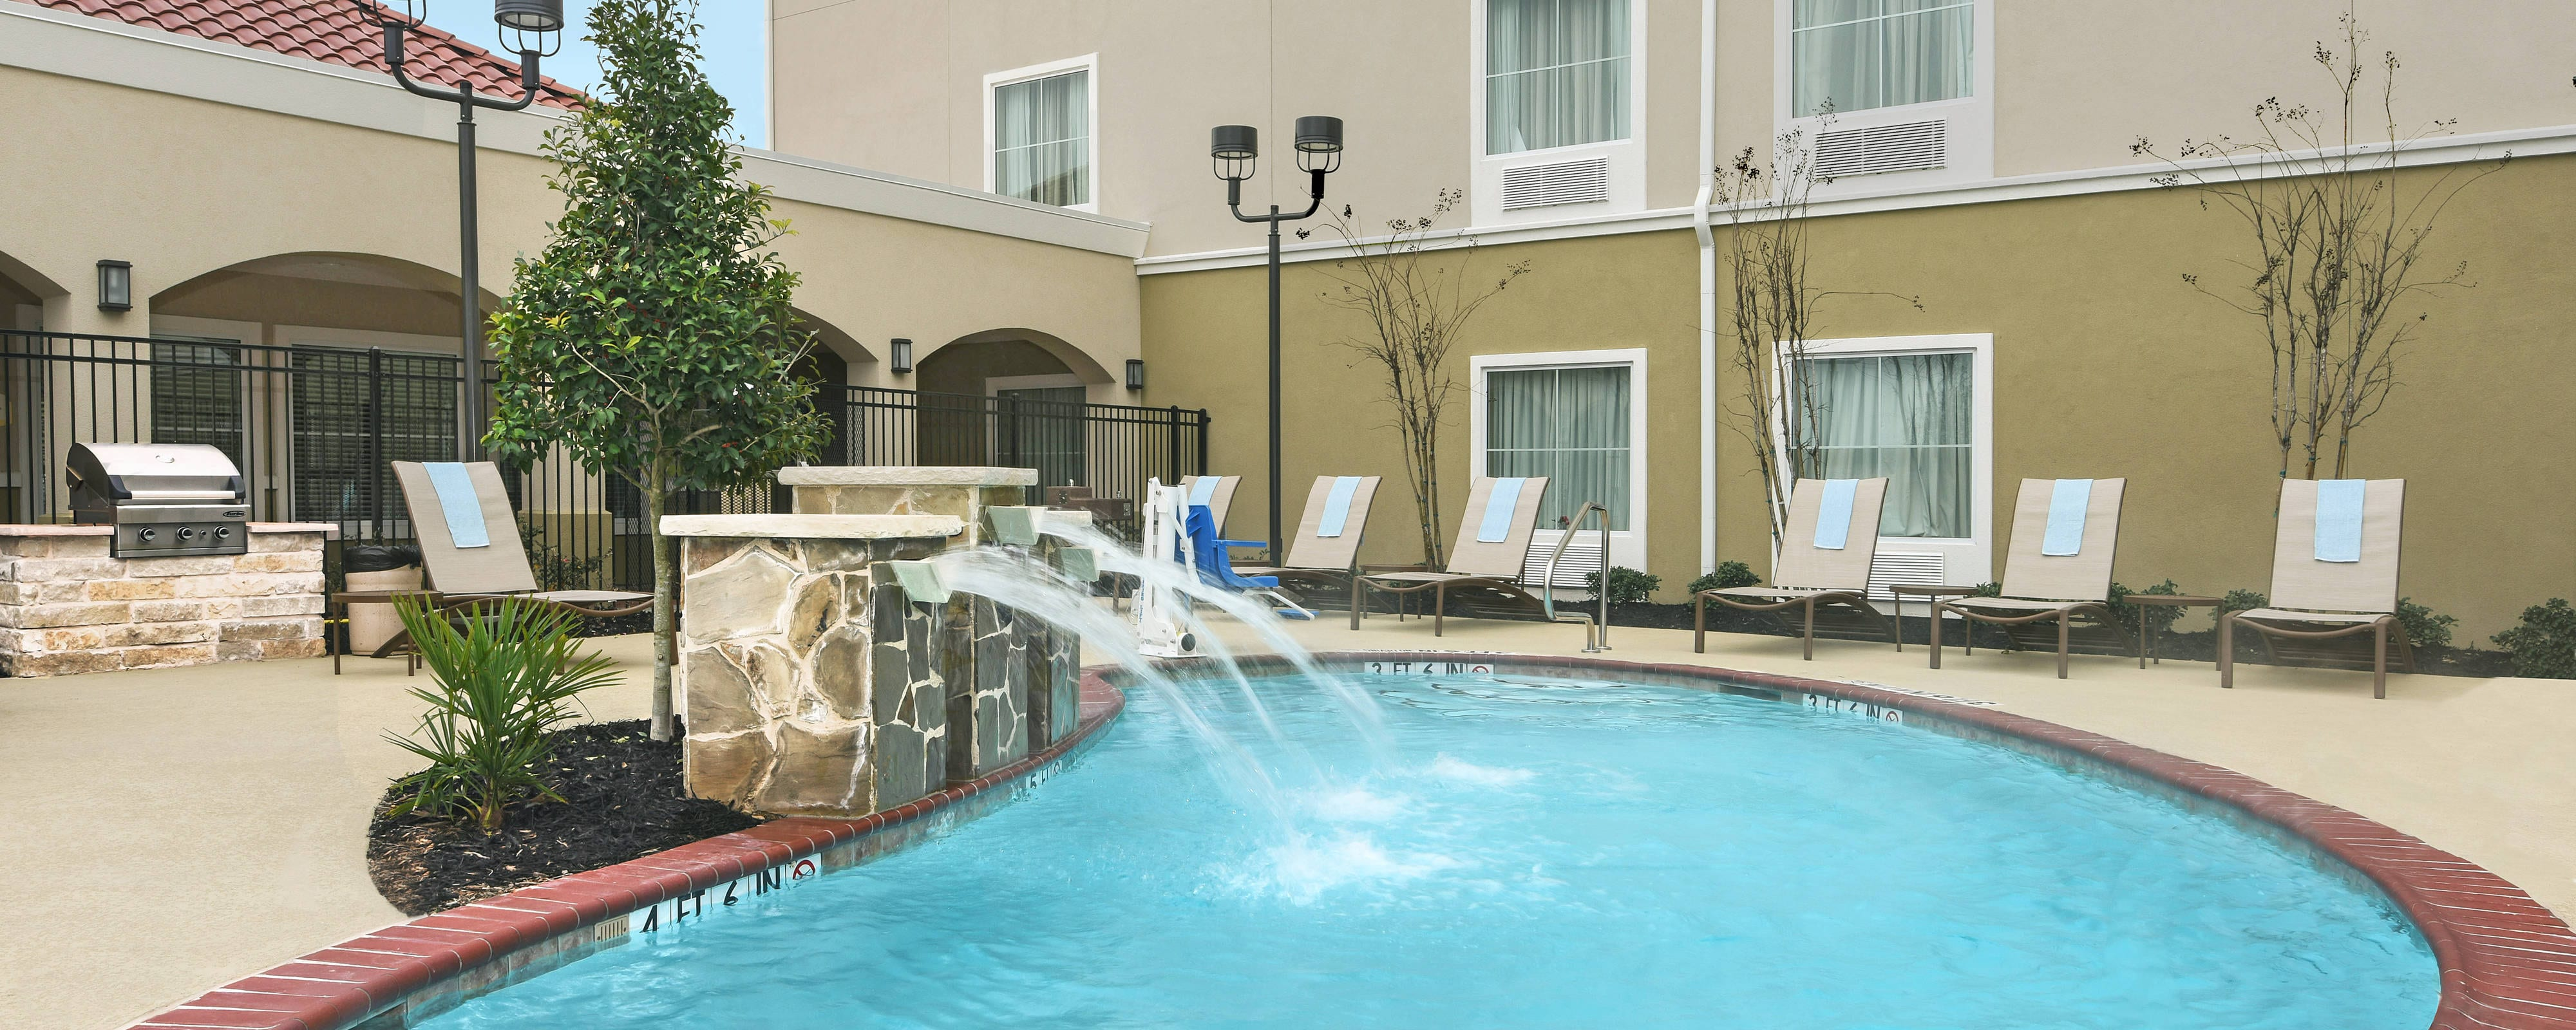 Outdoor Hotel Pool Seguin